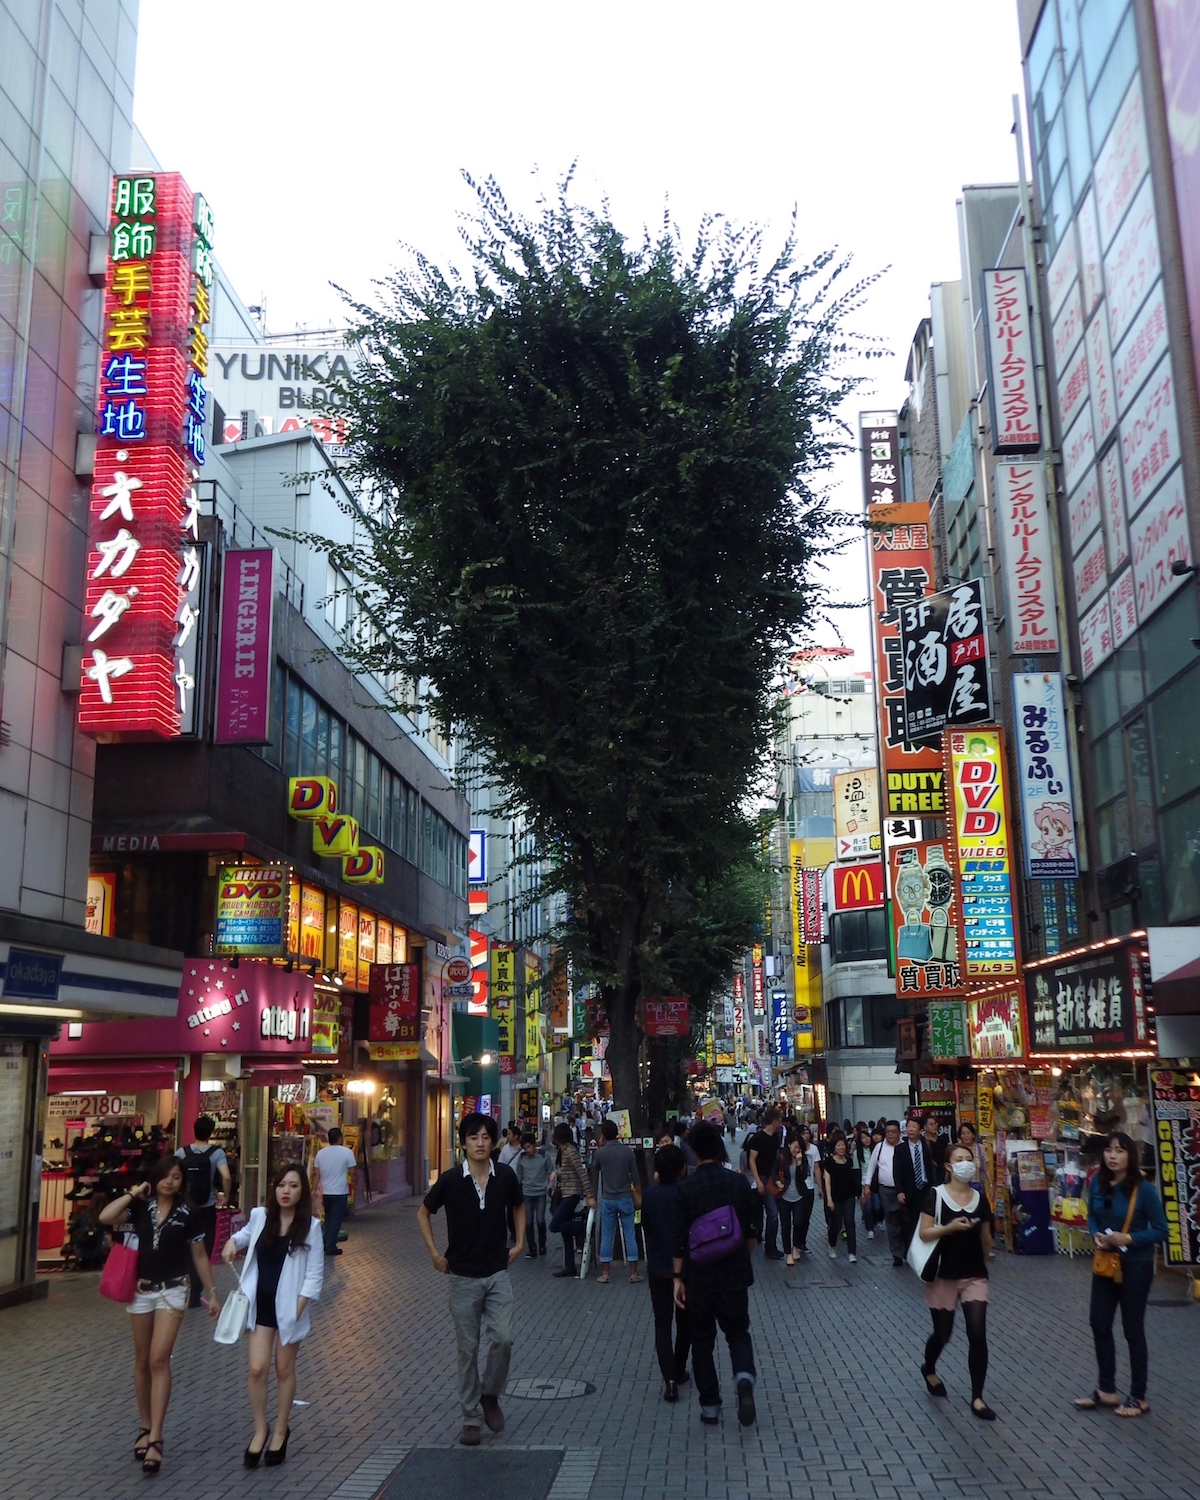 The tree-lined pedestrian street that leads from the East Exit of Shinjuku Station to Yasukuni Dori / Kabuki Central Road (a.k.a. Godzilla Road).